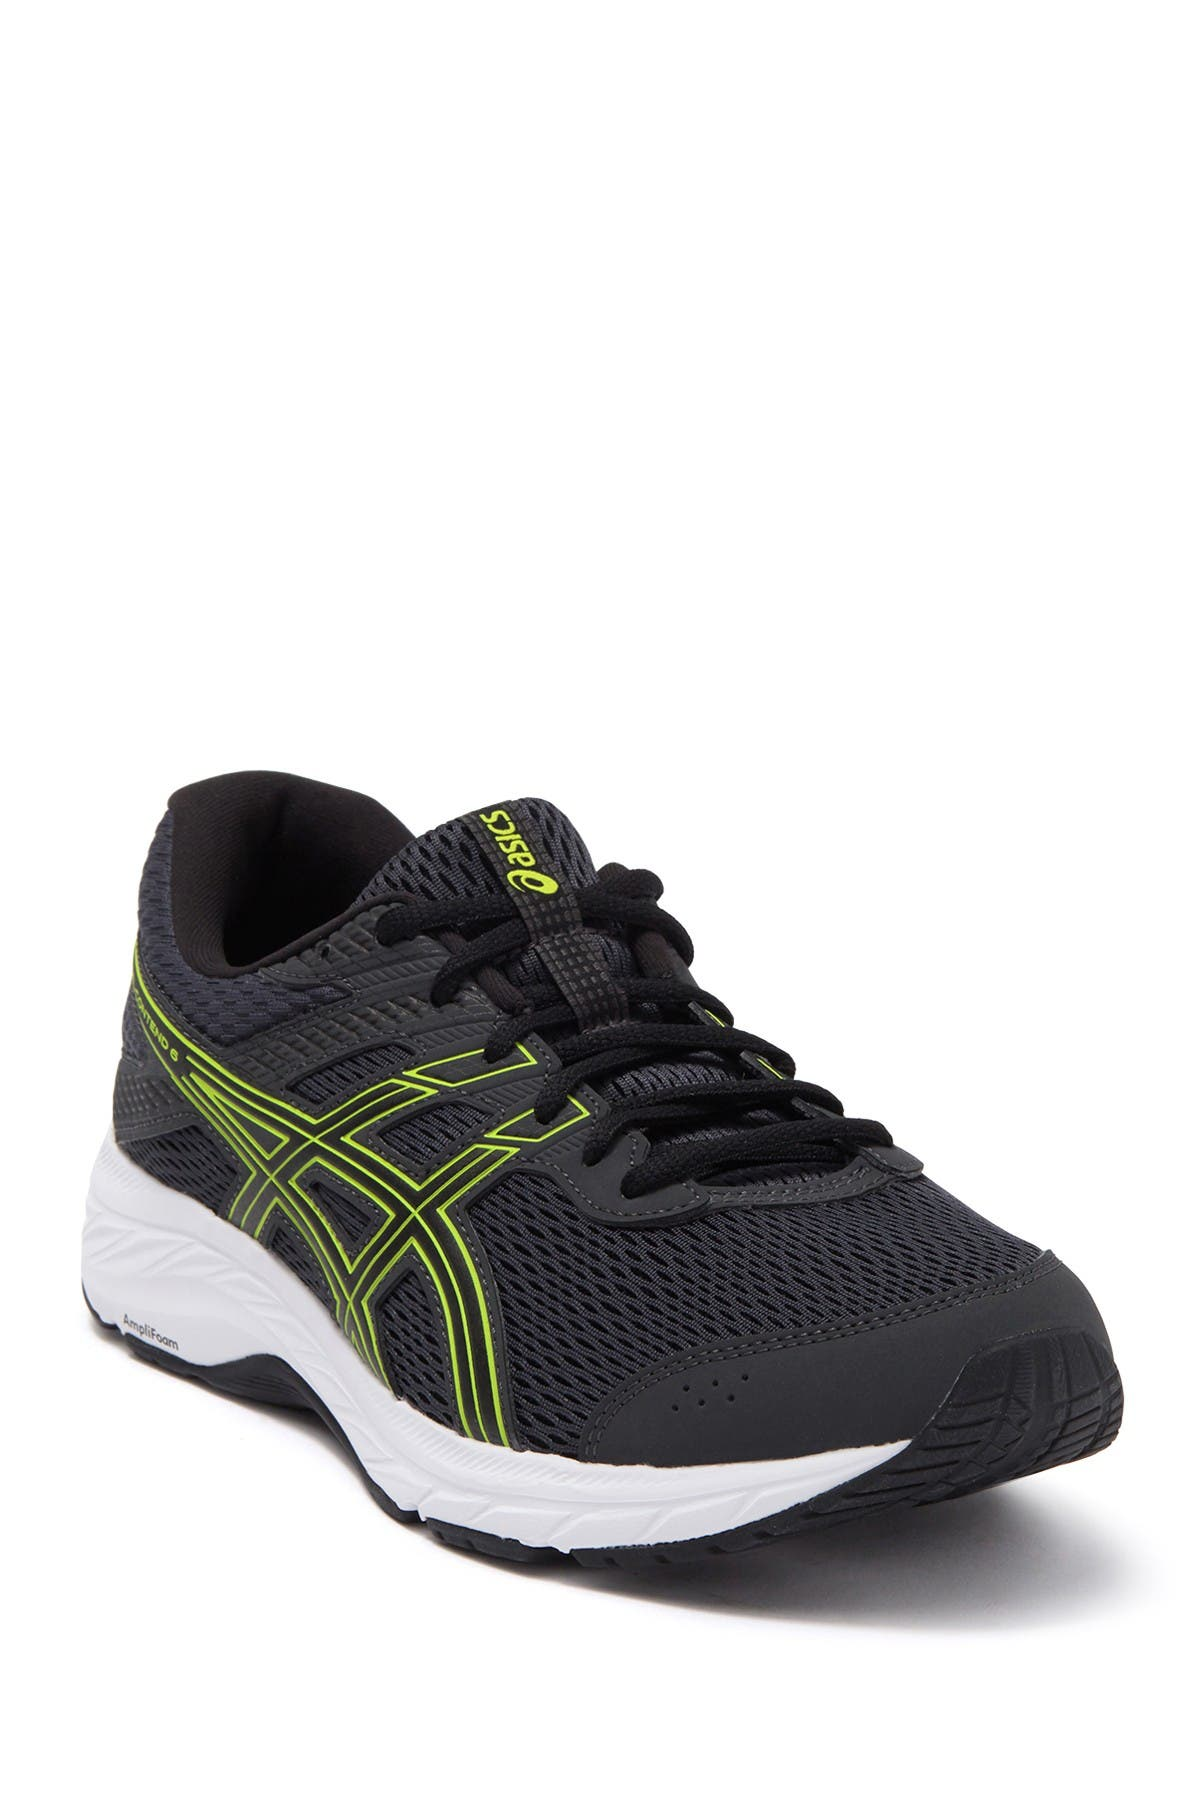 Image of ASICS GEL- Contend 6 Sneaker